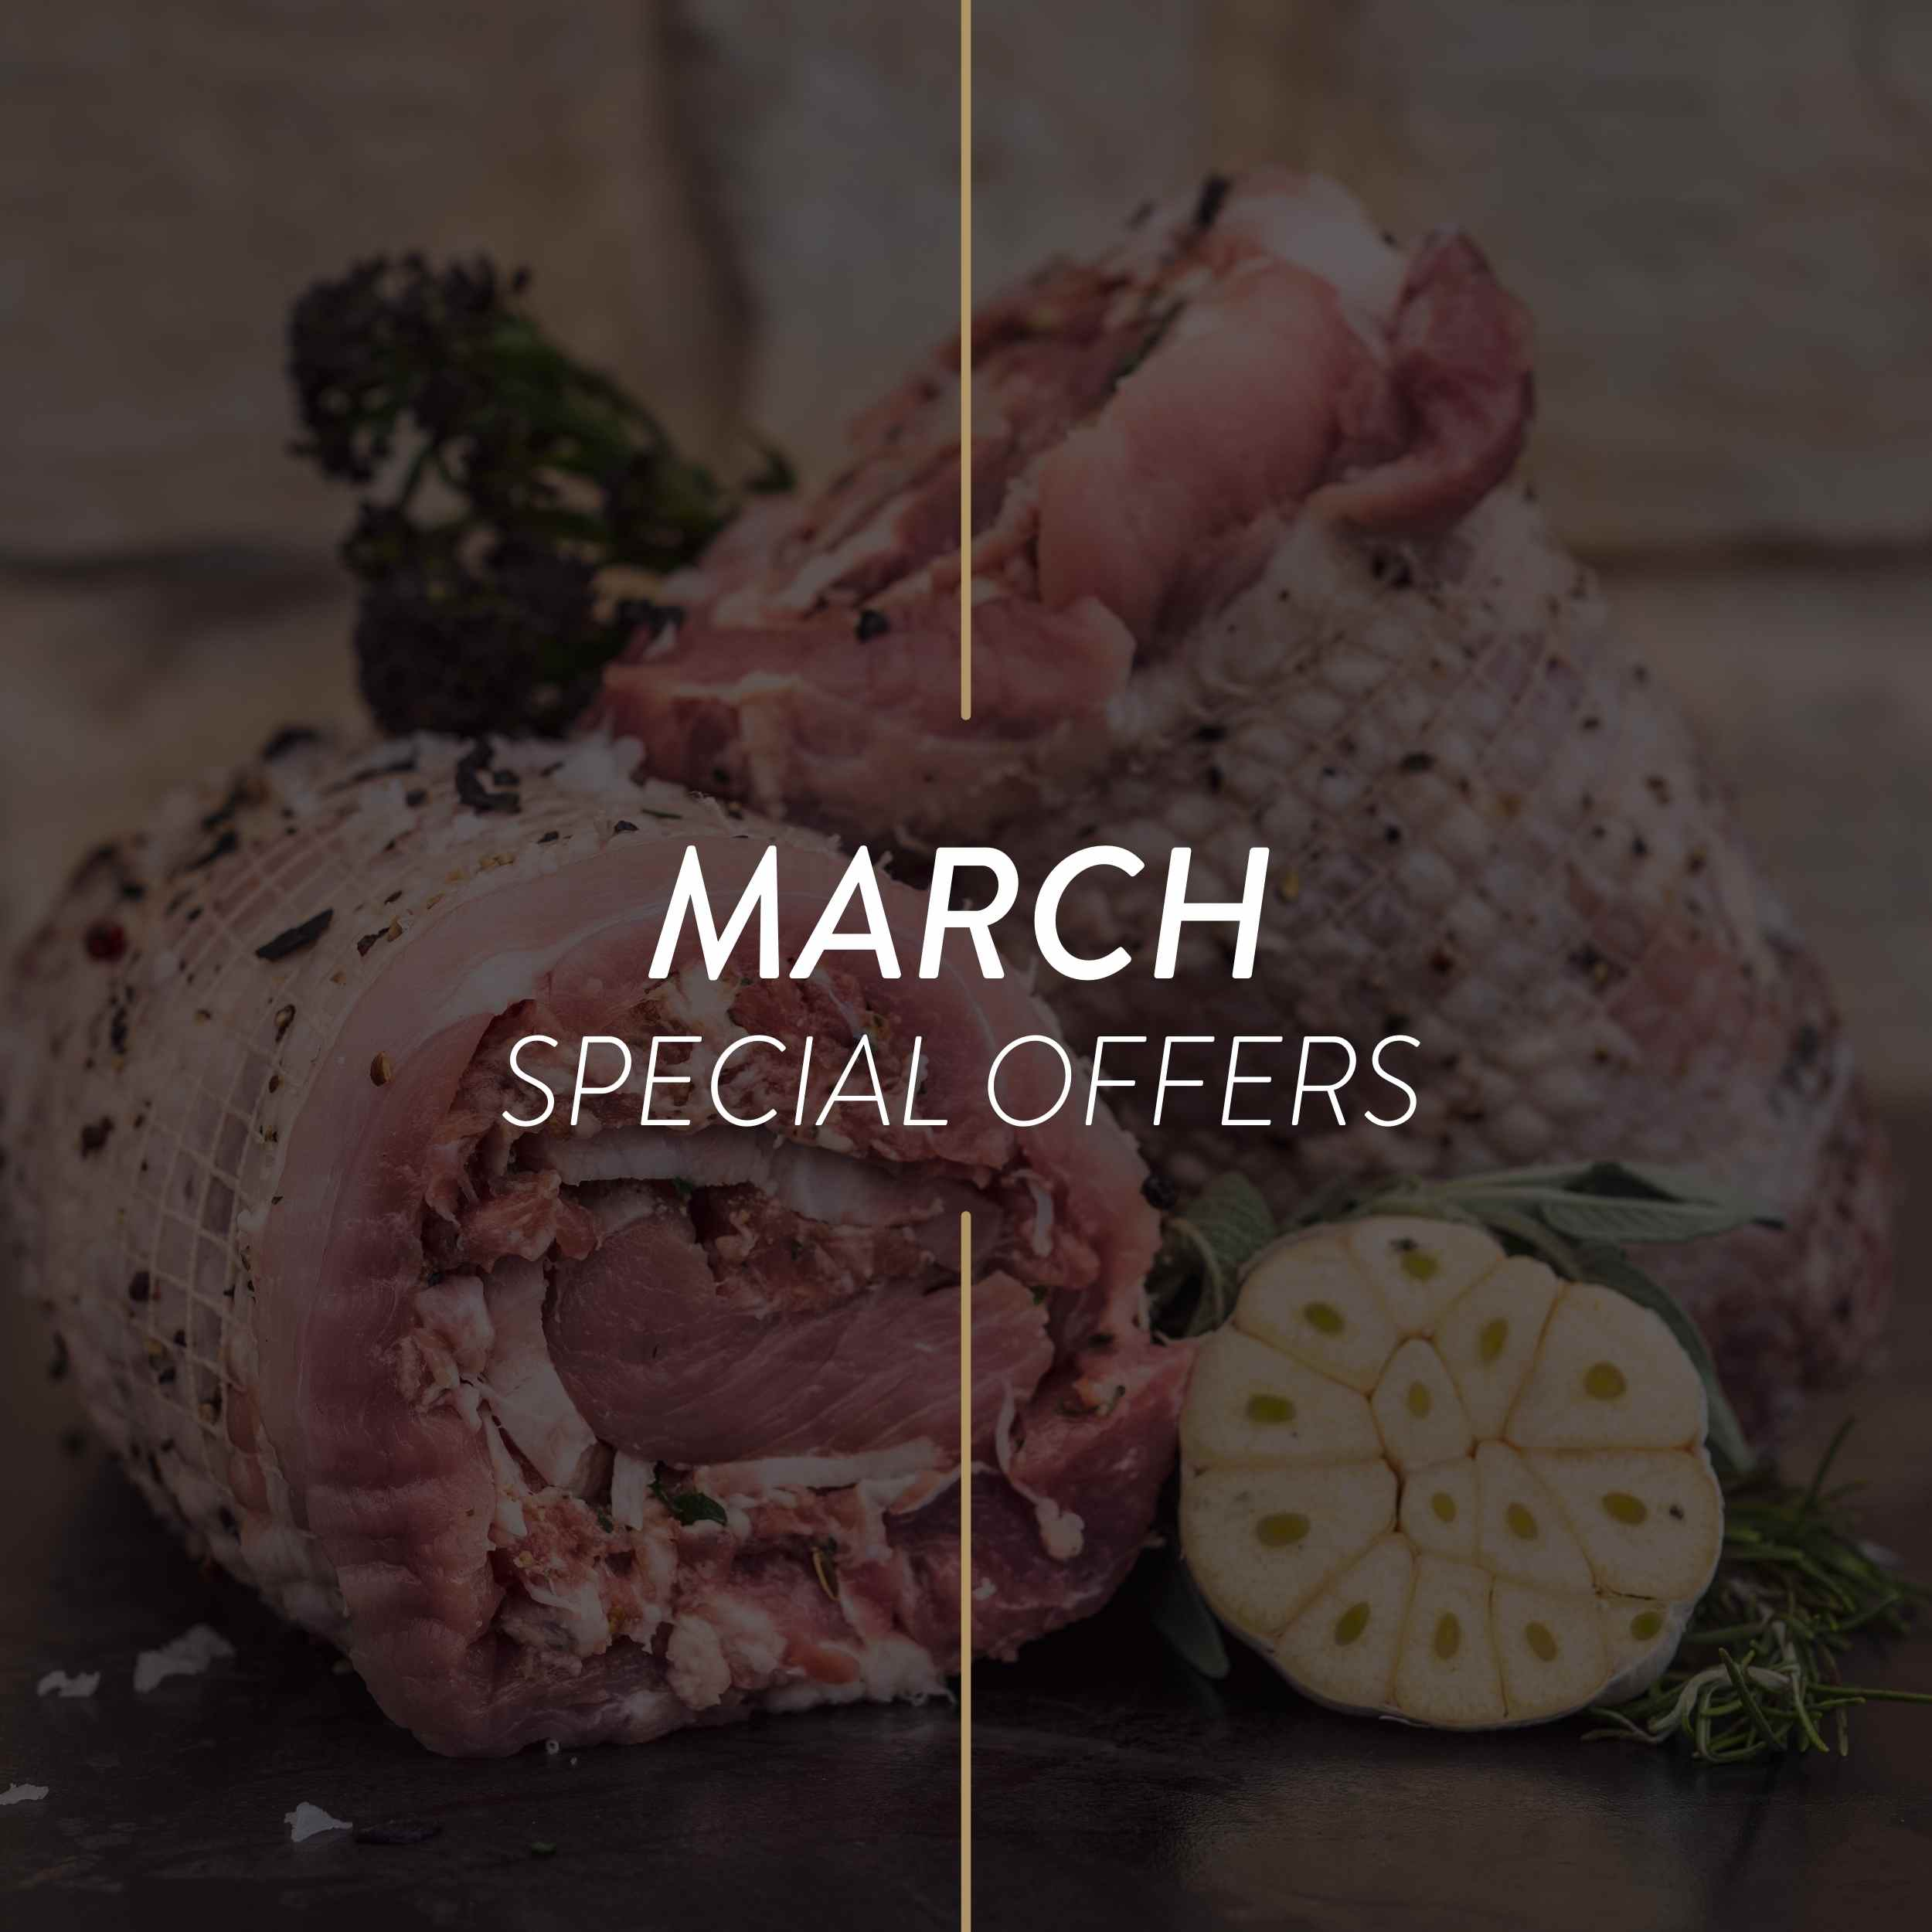 Special Offers and free meat items from La Boucherie - Malta's favourite Butcher